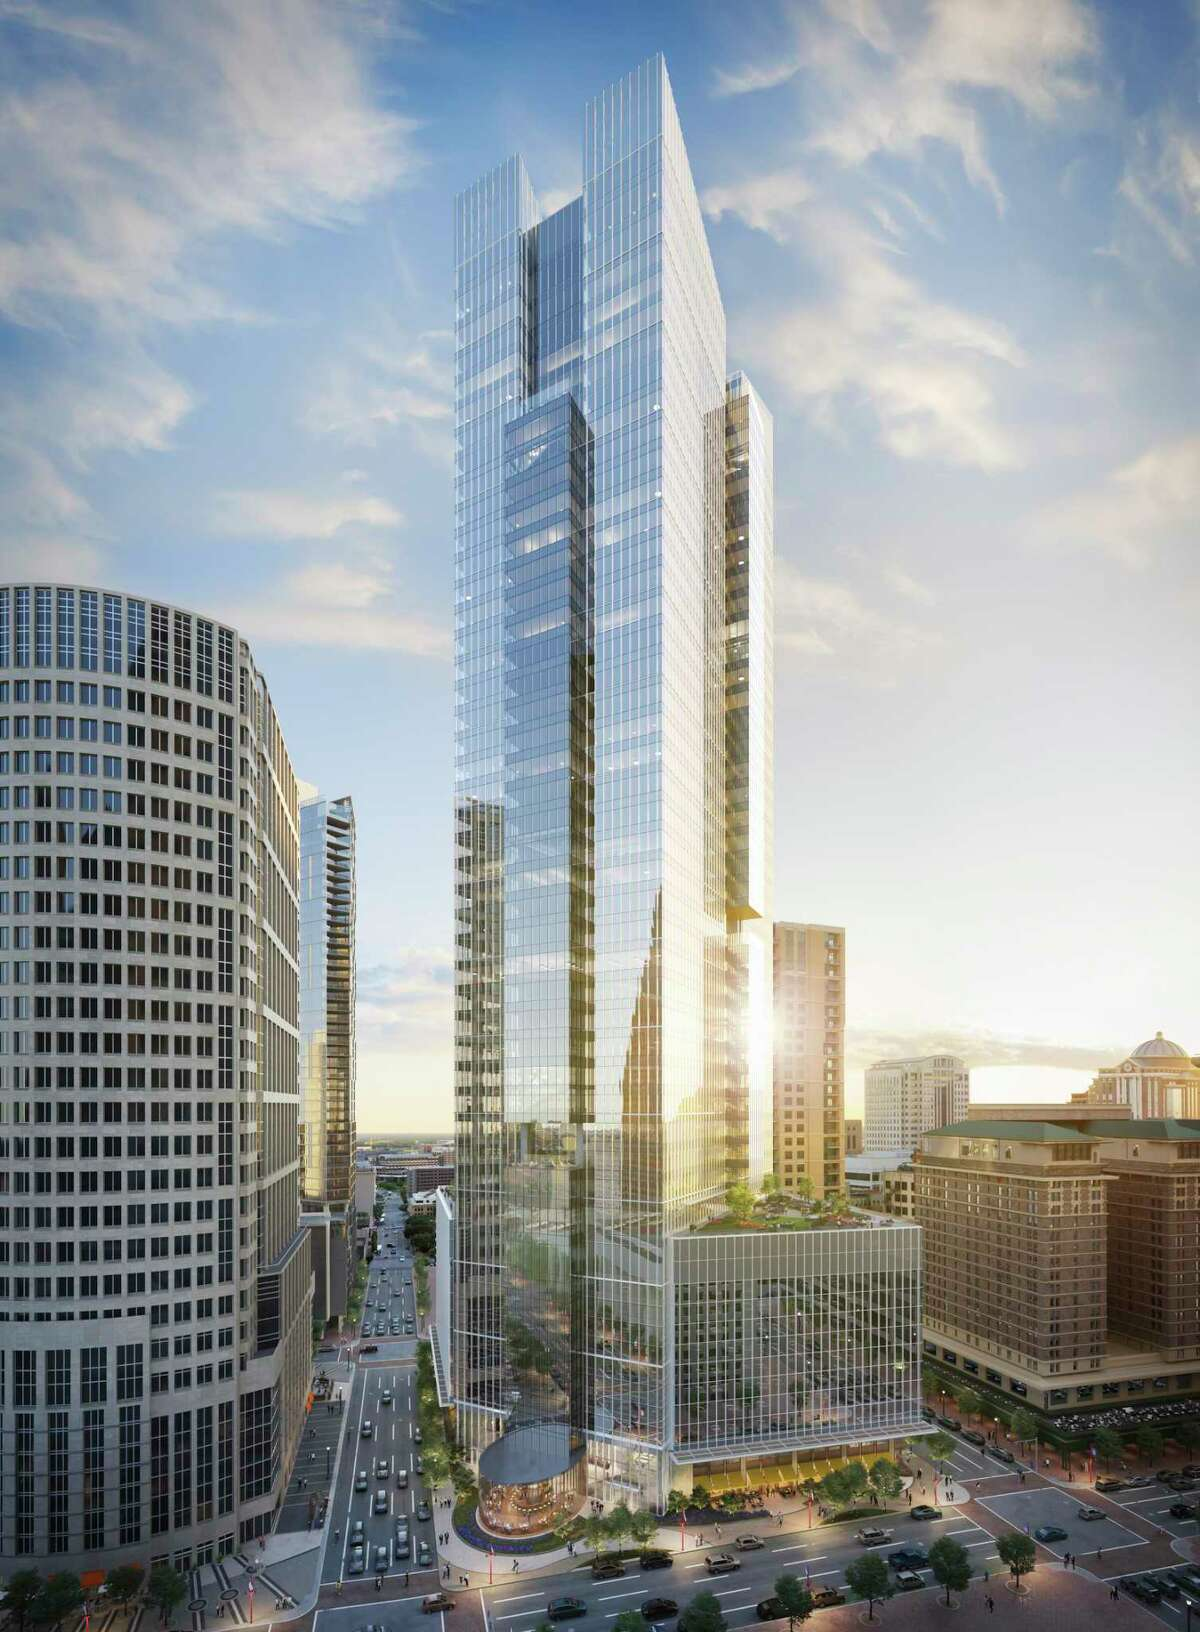 Hines and Ivanhoé Cambridge are developing Texas Tower, a 47-story office building at 845 Texas Ave. with numerous common areas for working and relaxing.